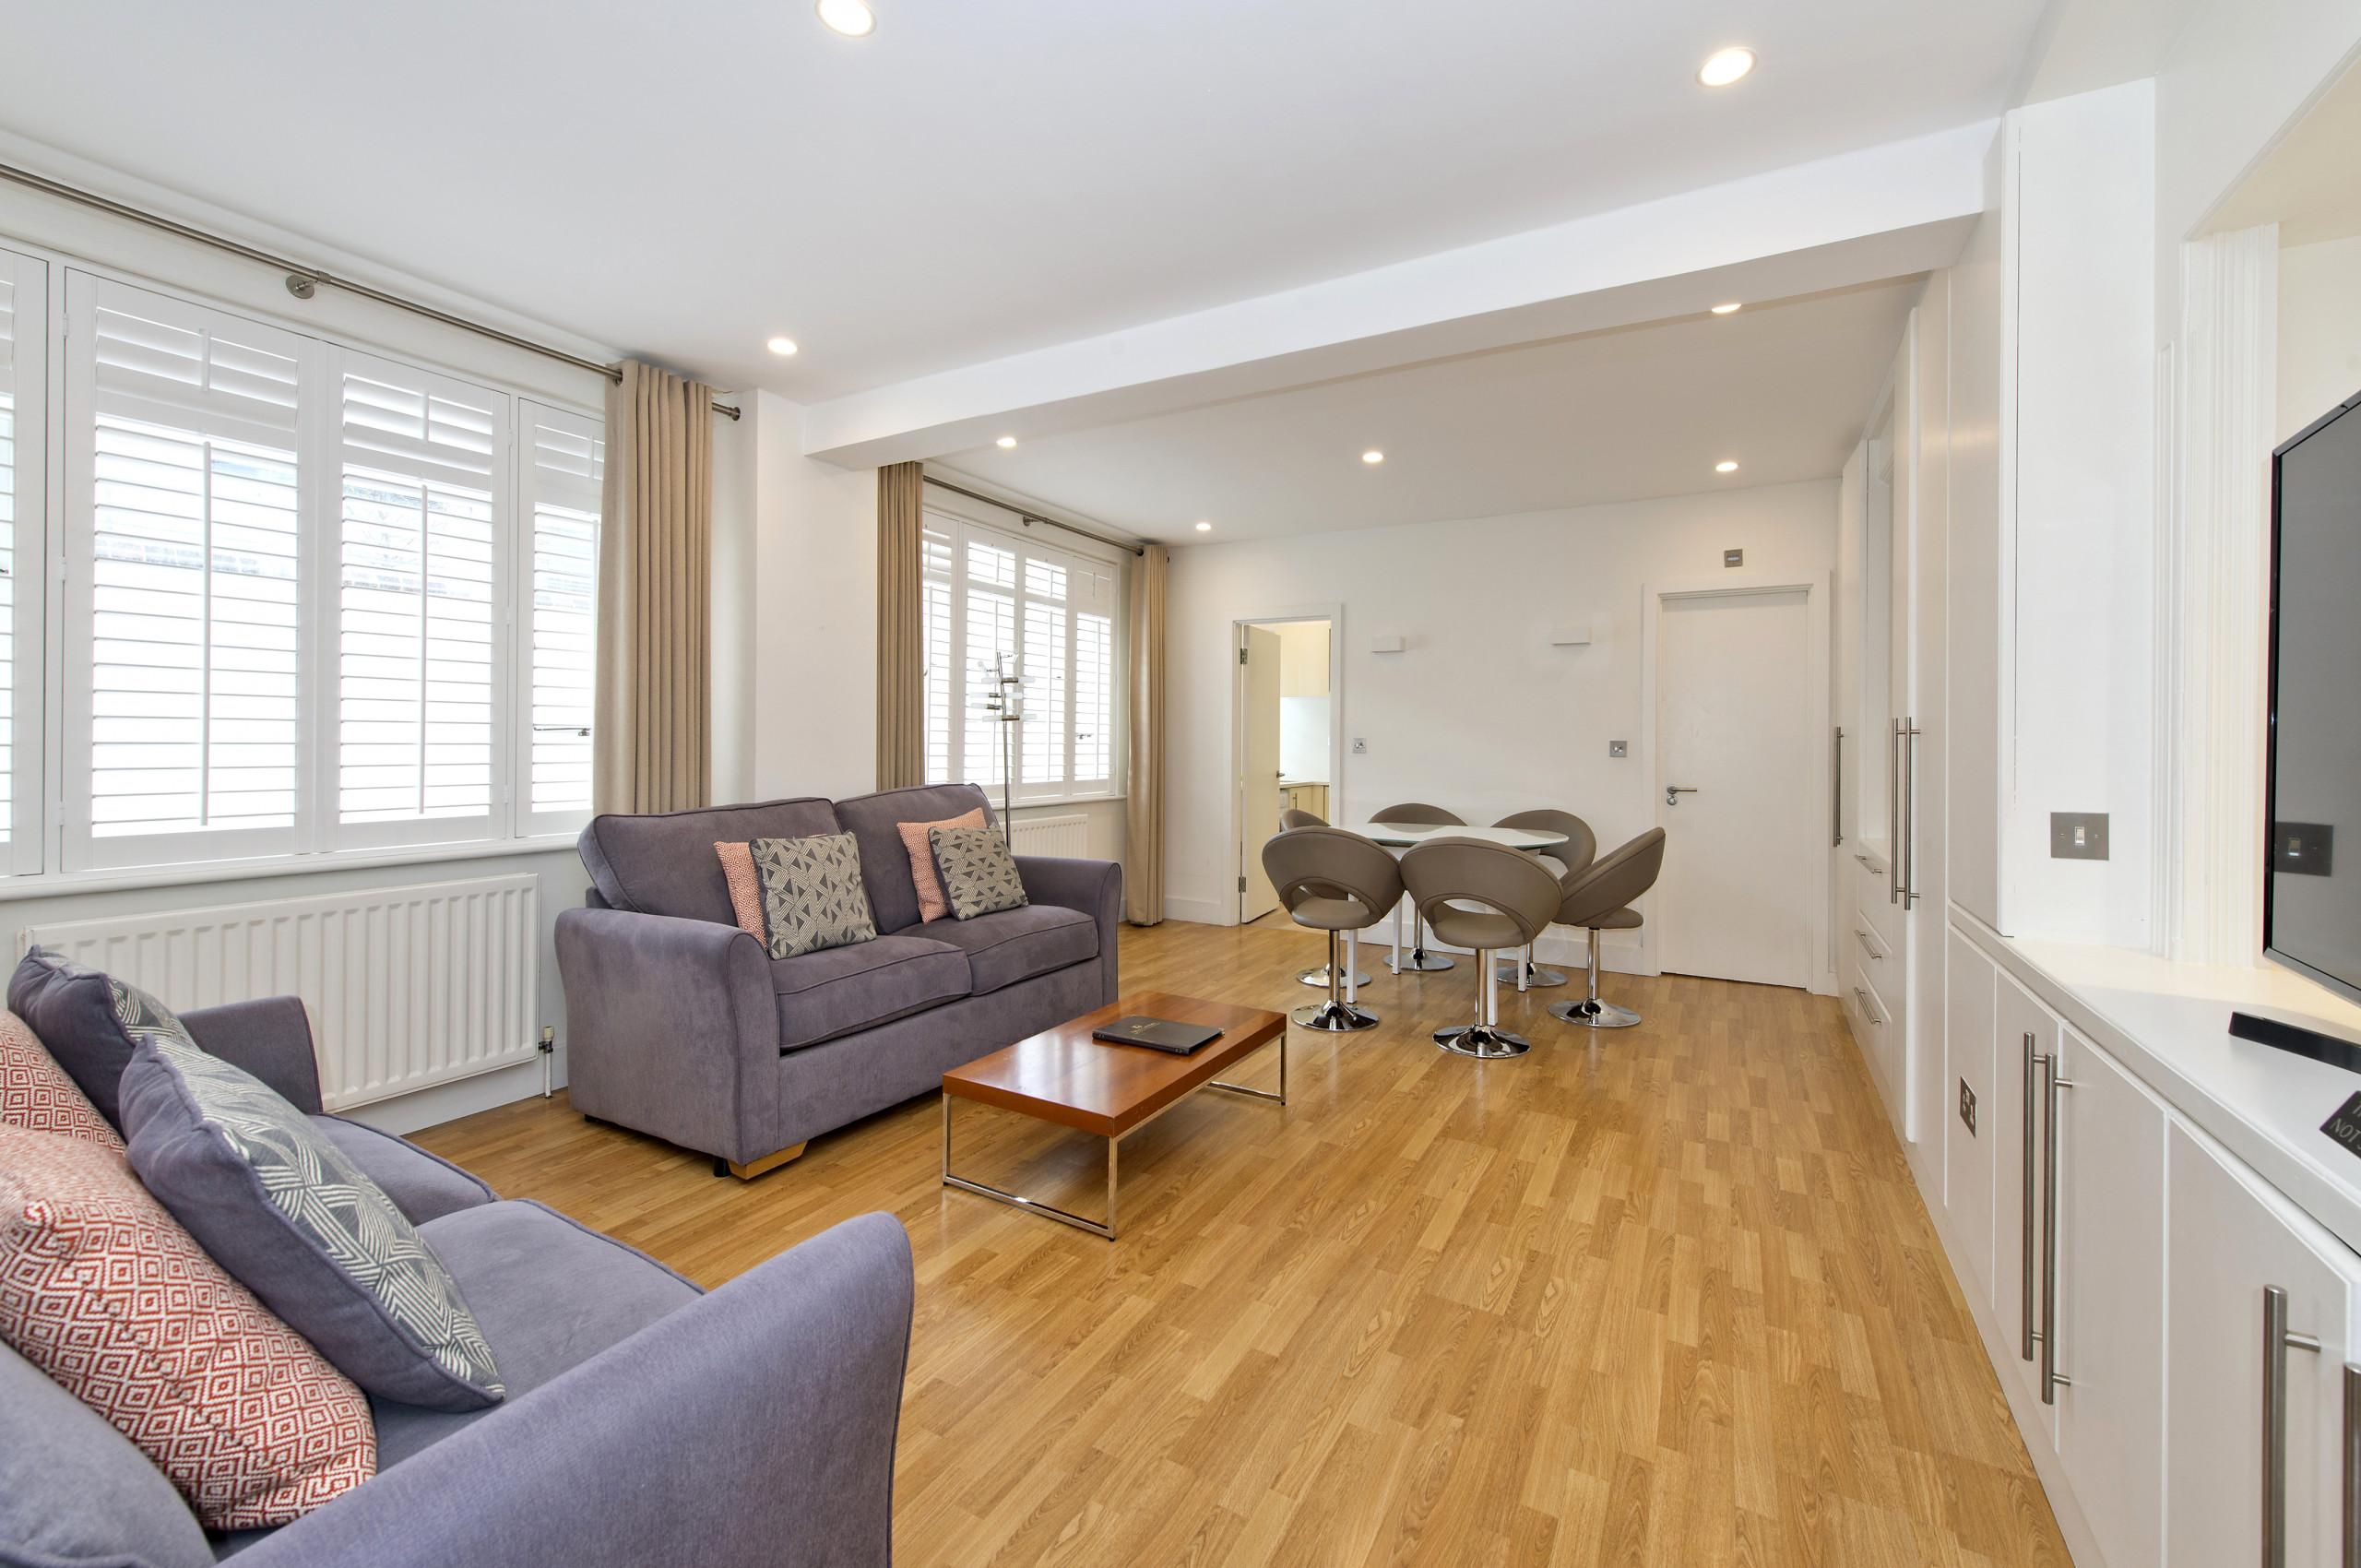 Property Image 1 - Luxury Family Home in Chelsea